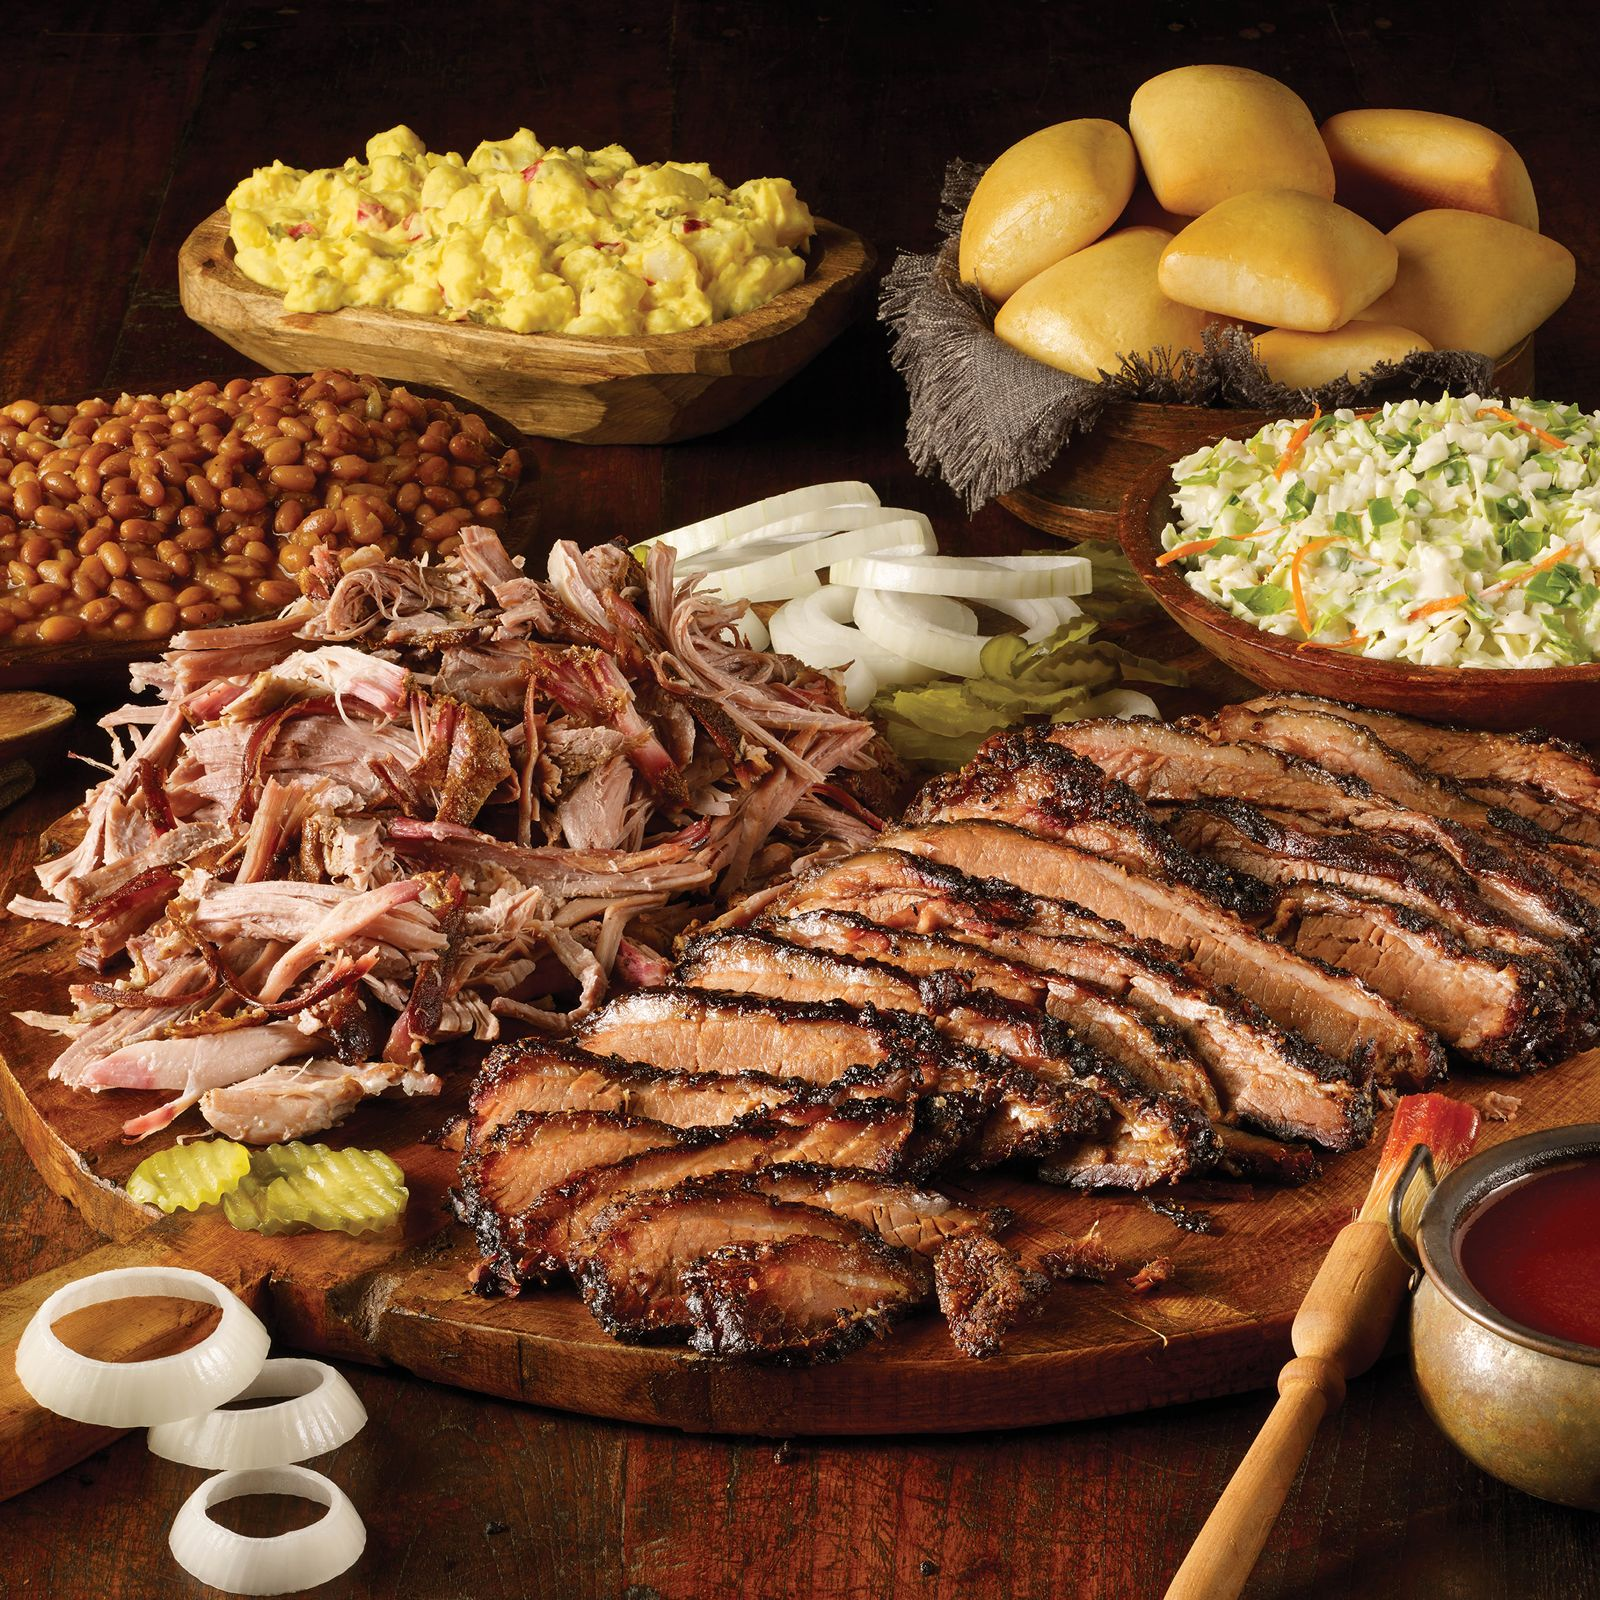 Haywood County's Newest Dickey's Barbecue Pit Celebrates the Community